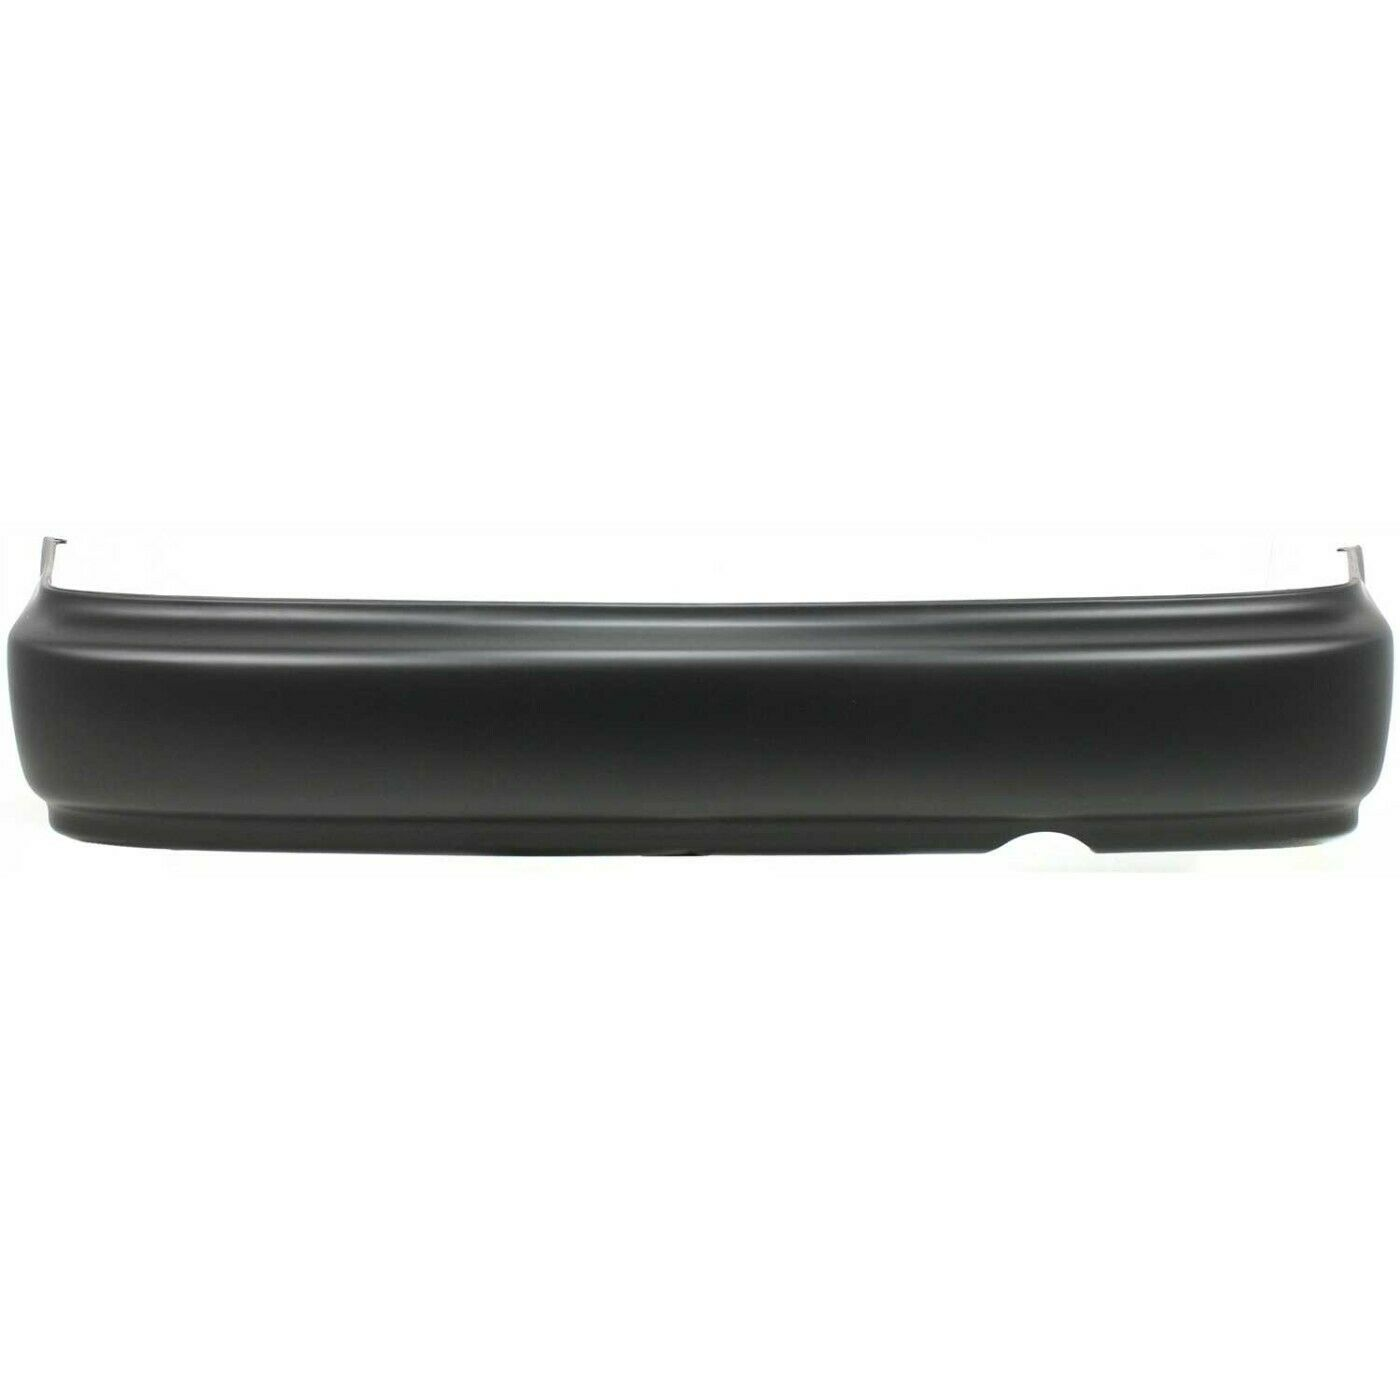 1996-1998 Honda Civic Sedan Rear Bumper